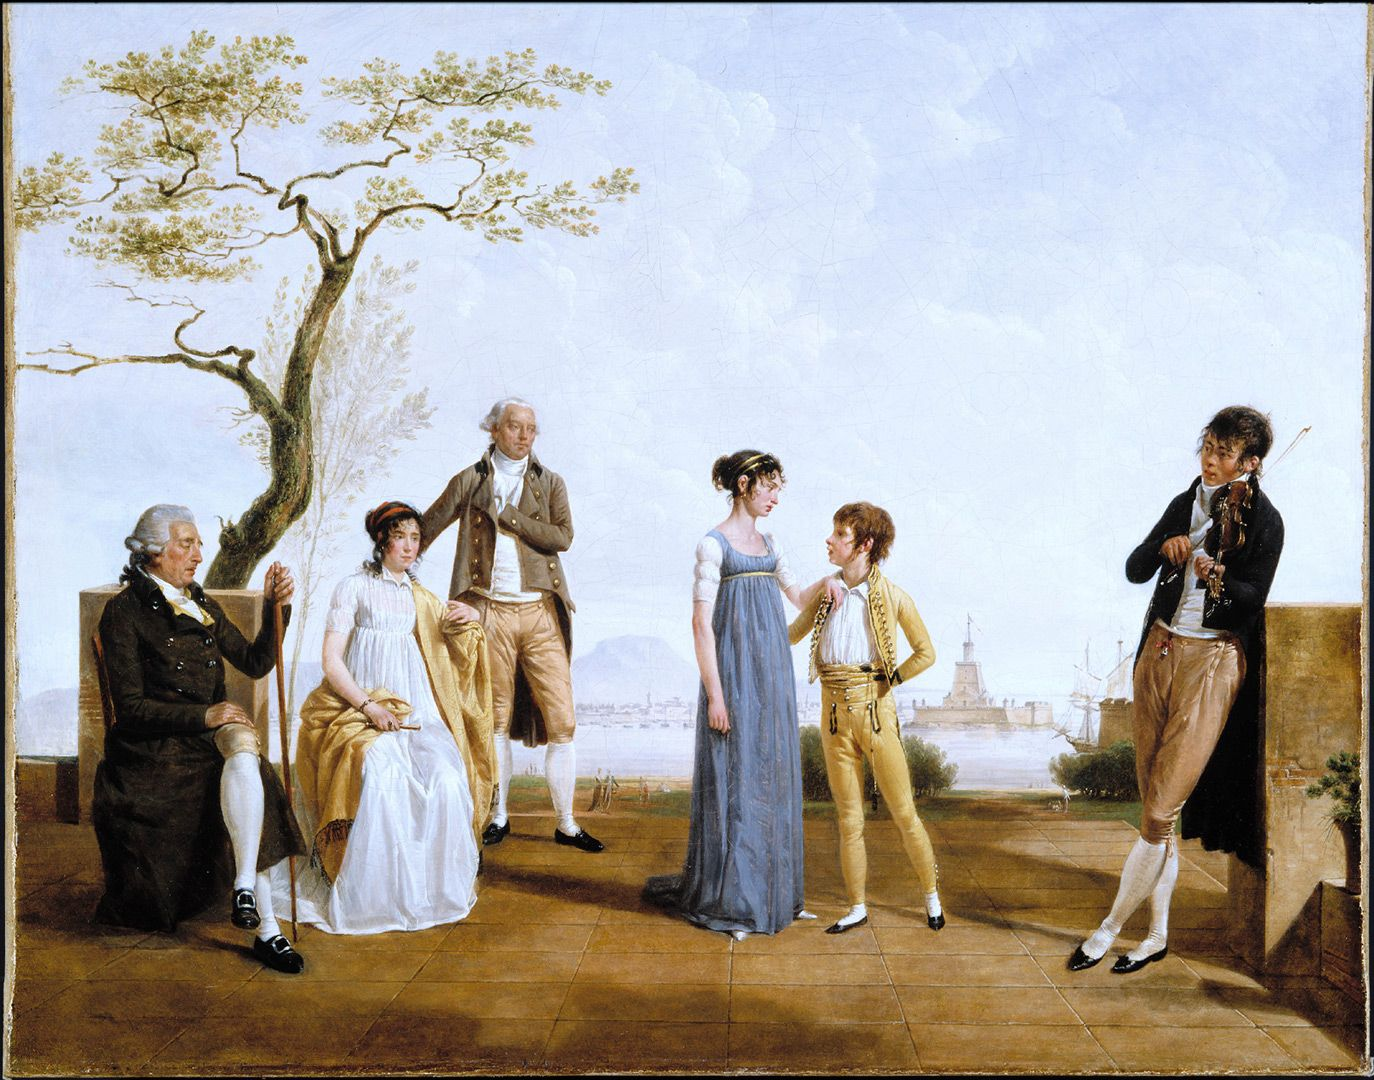 Jacques Sablet, le jeune, Family Portrait in front of a Harbour, 1800, oil on canvas, 64.8 x 81.4 cm. Purchase, special replacement fund.